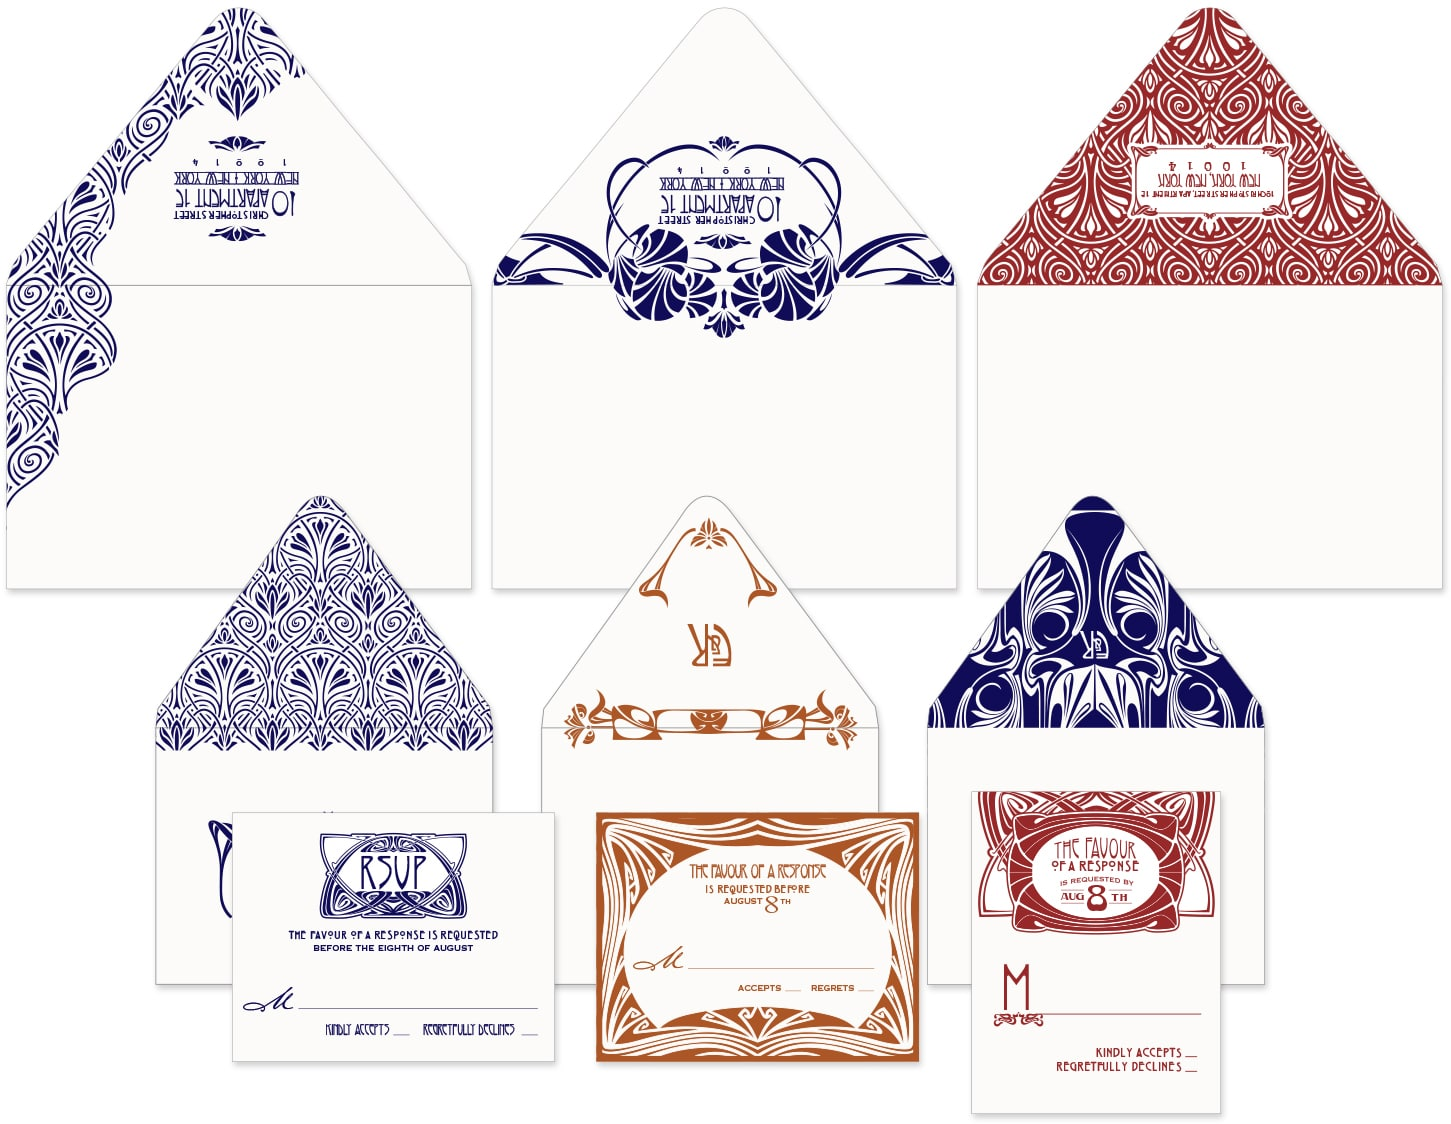 Belle Epoque envelopes